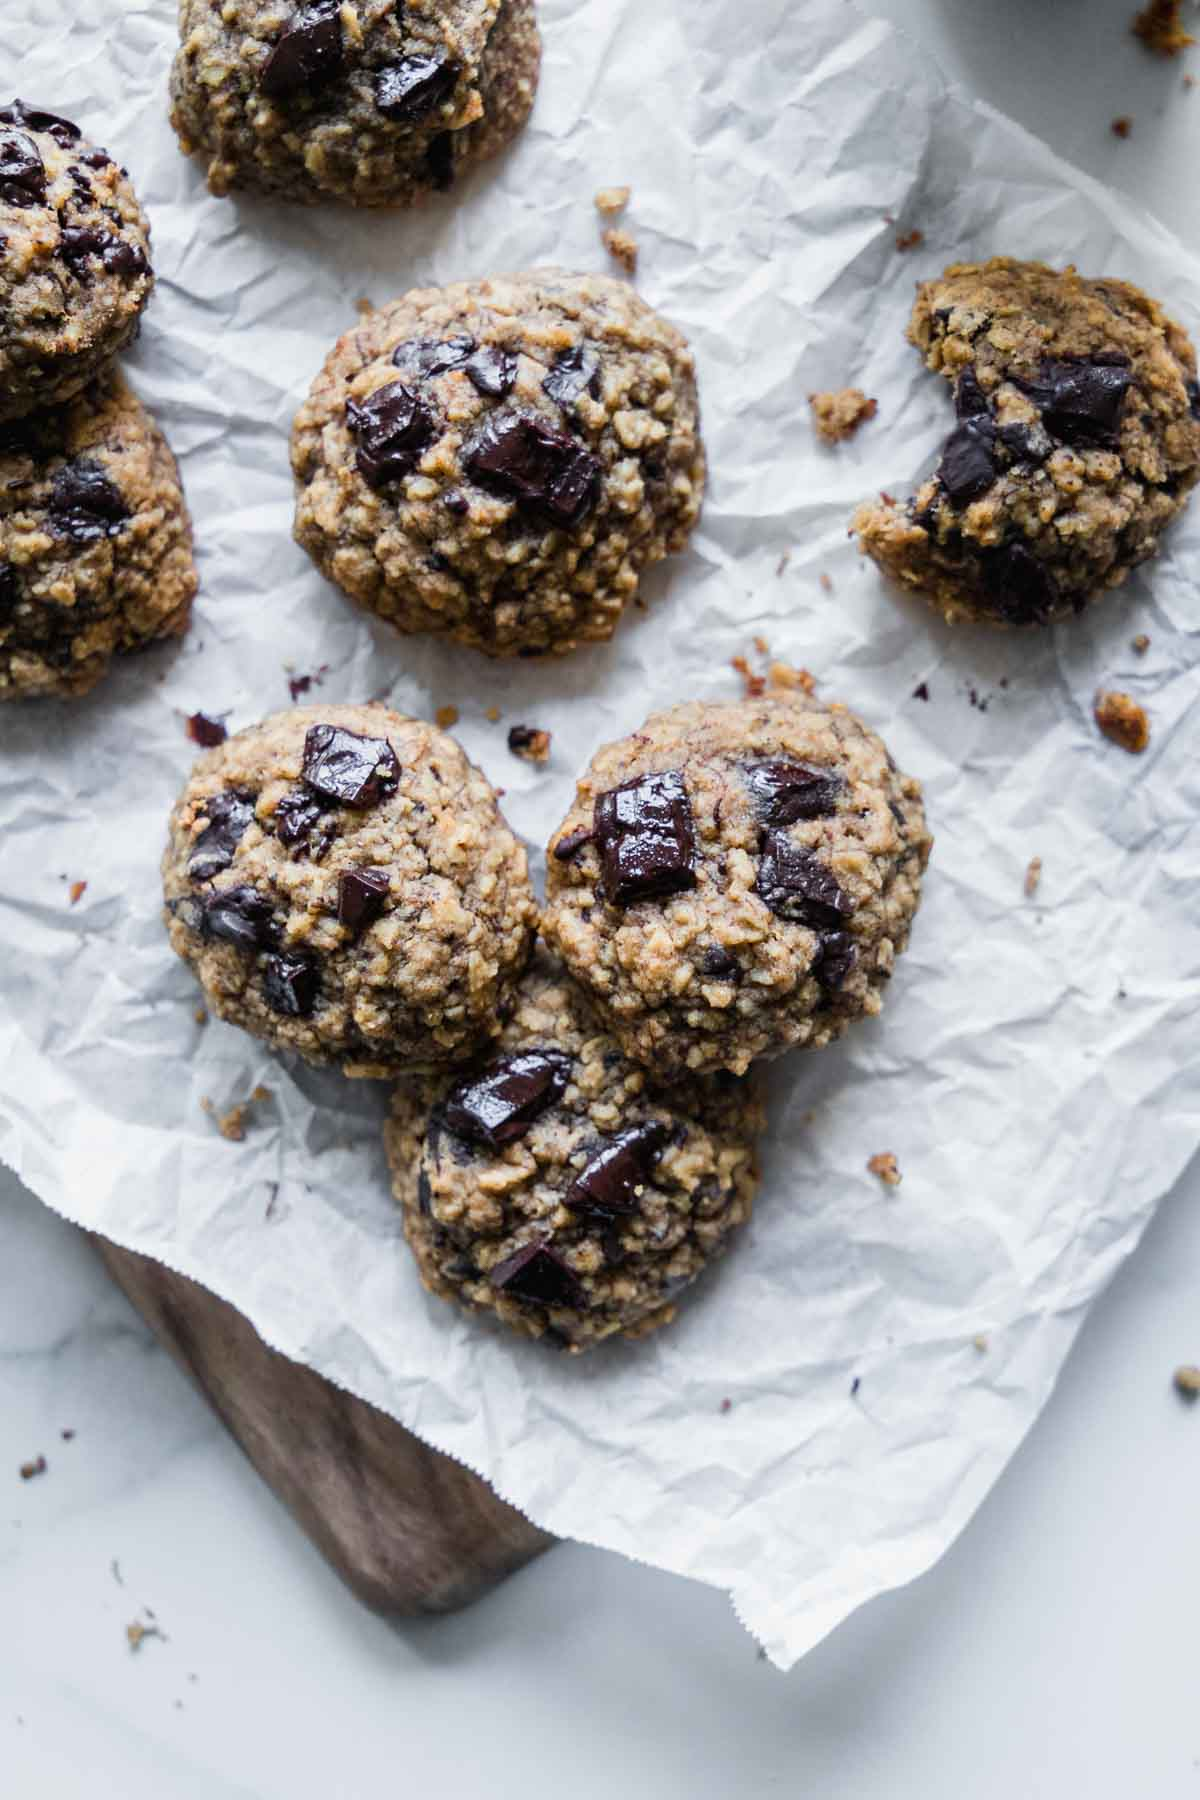 Banana Oatmeal Breakfast Cookies | katiebirdbakes - wholesome gluten-free, vegan, naturally sweetened yet delicious.